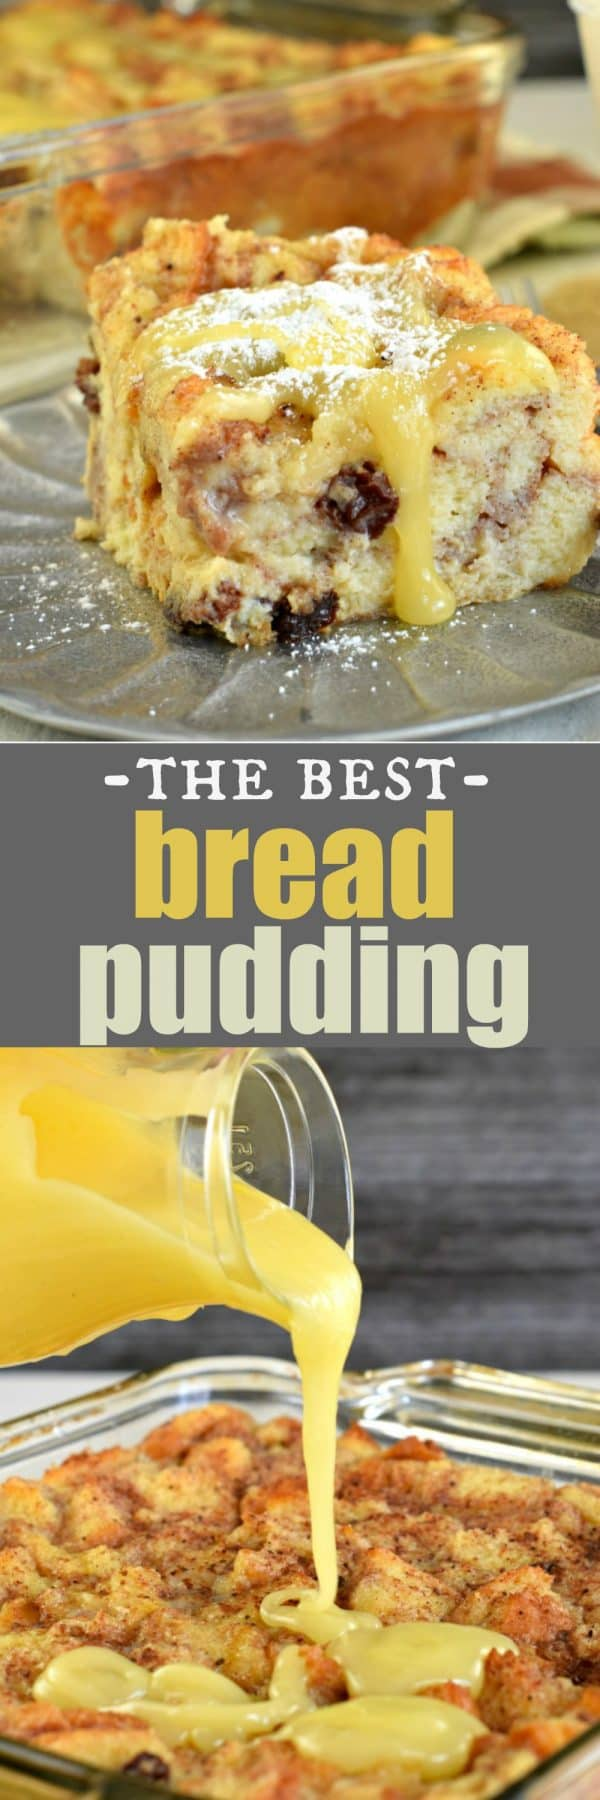 Old fashioned dessert with a sweet custard texture, my Dad's Bread Pudding with Lemon Sauce is irresistible!